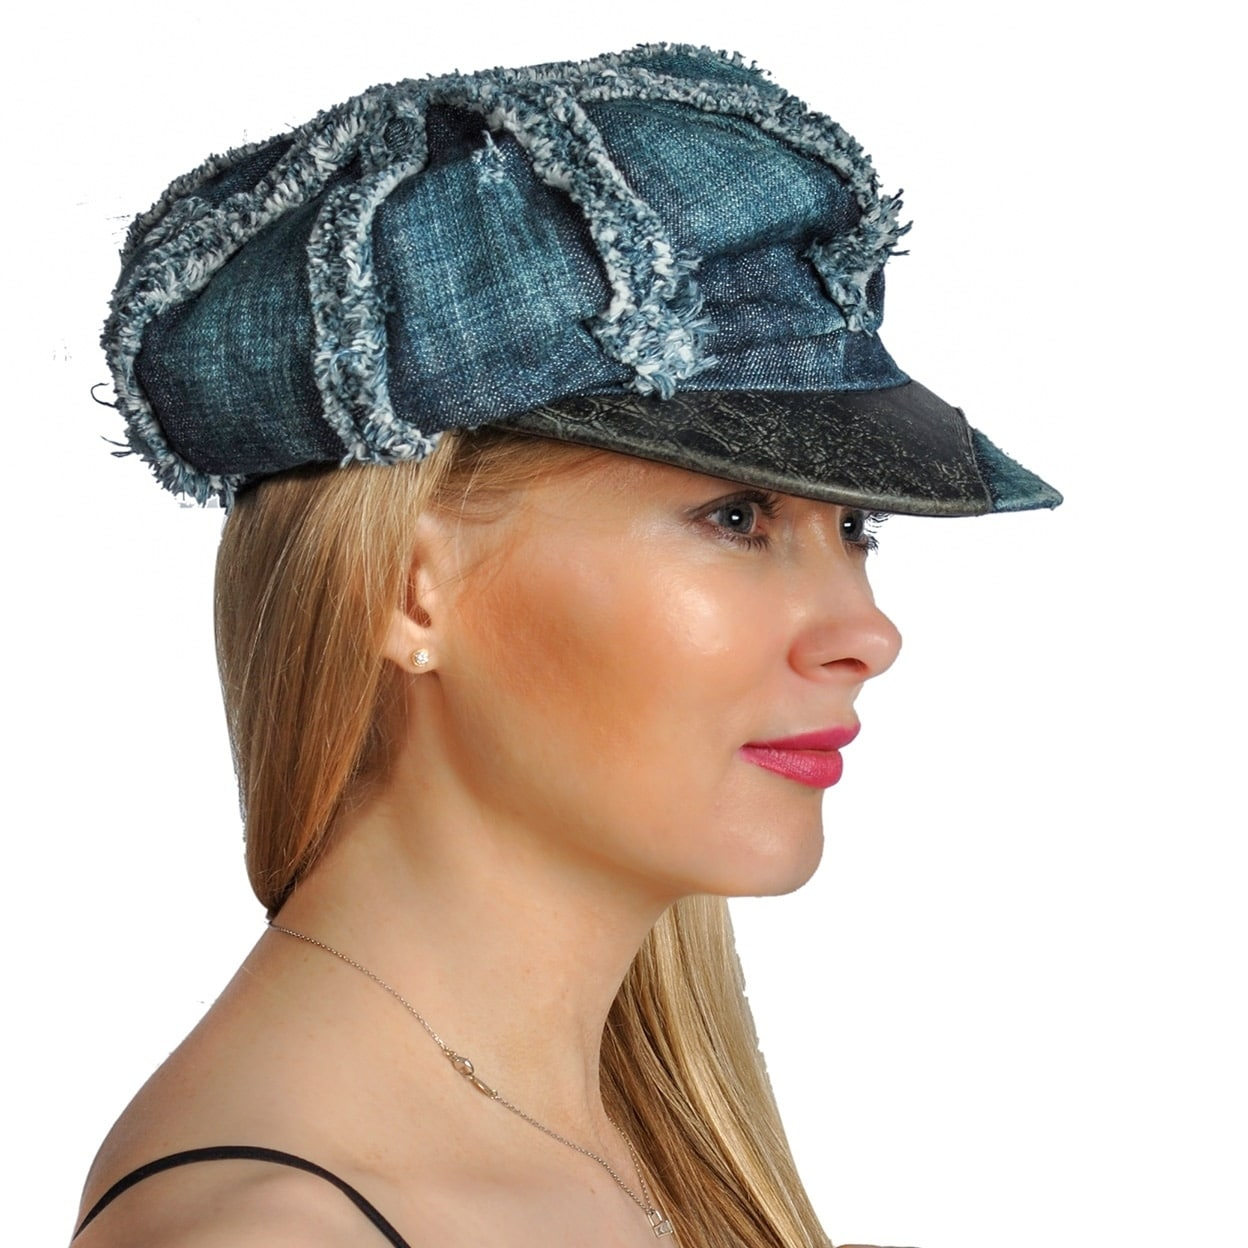 Dream Control Denim Distressed Leather Lining Irish Style Hats Blue - Free  Shipping On Orders Over  45 - Overstock - 27514430 da48e44f289